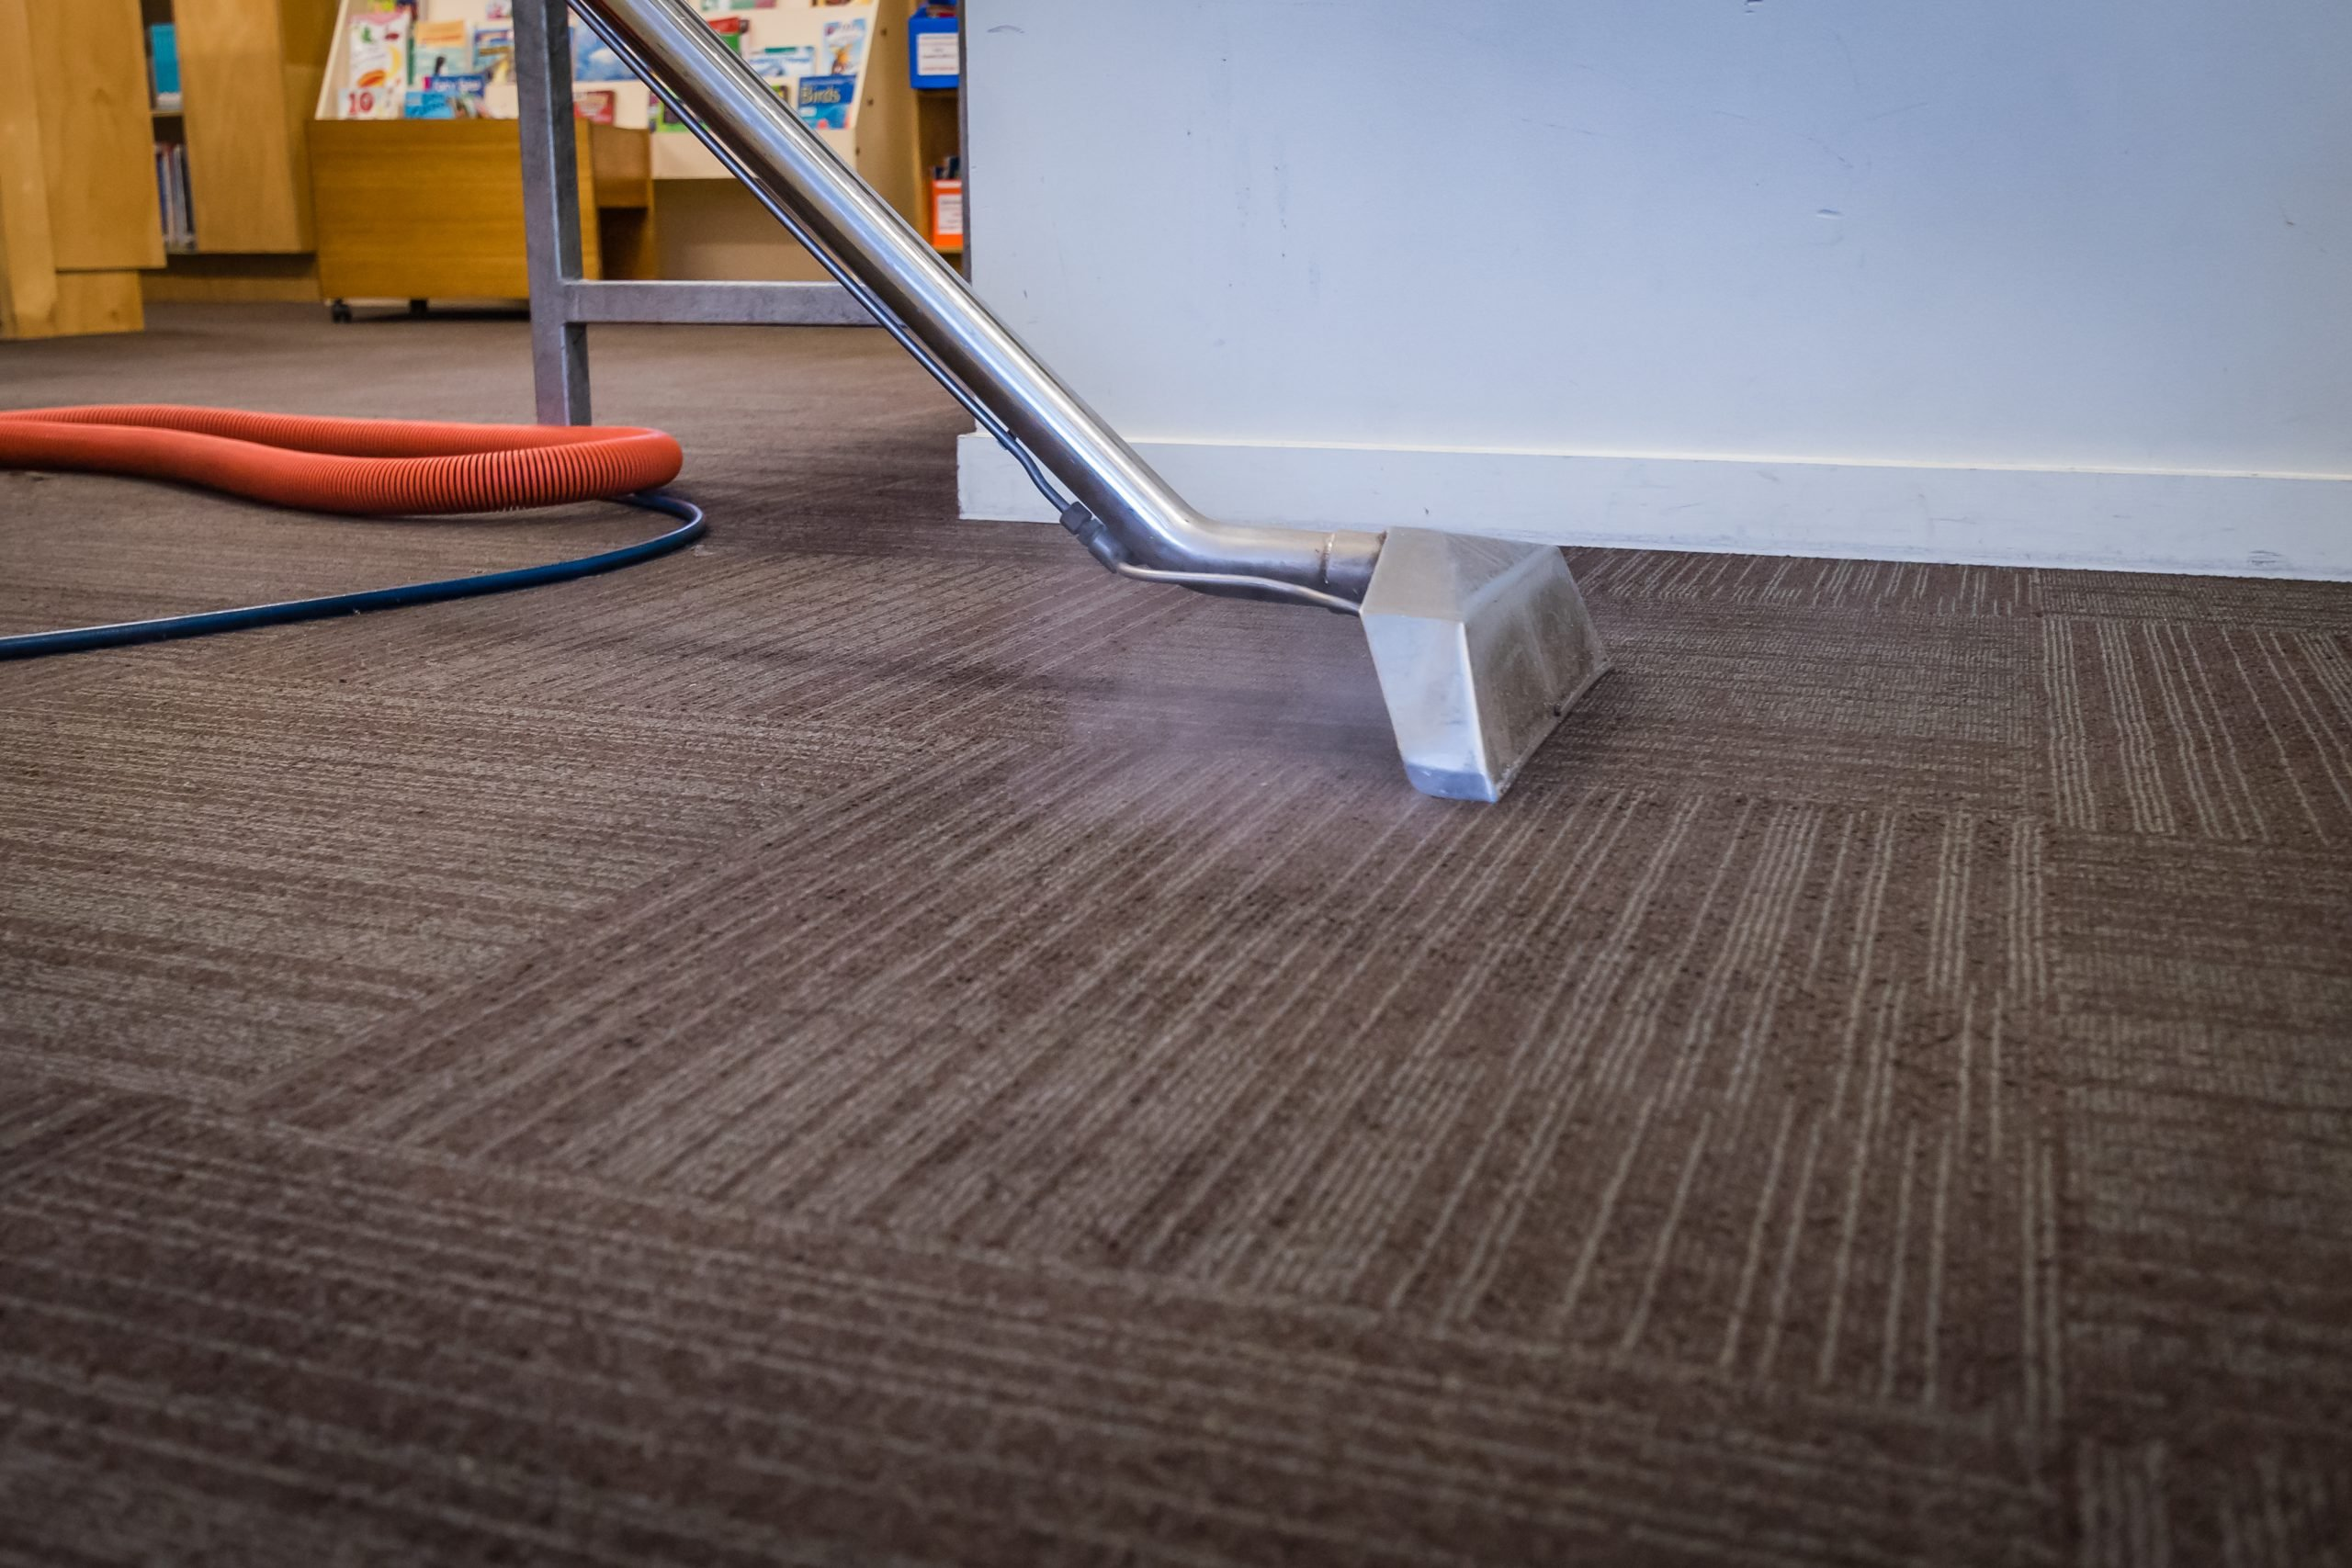 Brouwer Brothers Steamatic cleaning a carpet in Alsip, IL